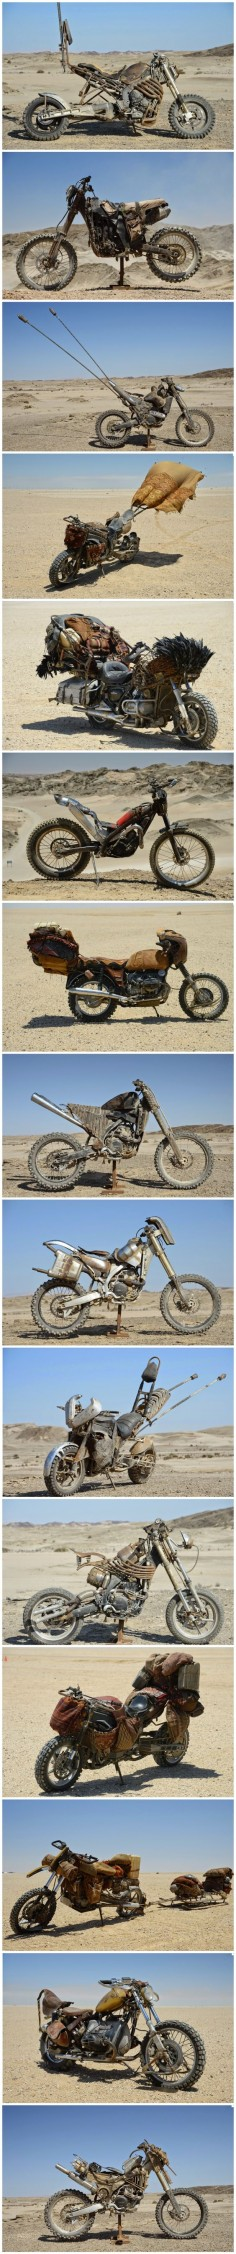 The custom motorcycles of Mad Max: Fury Road - Imgur